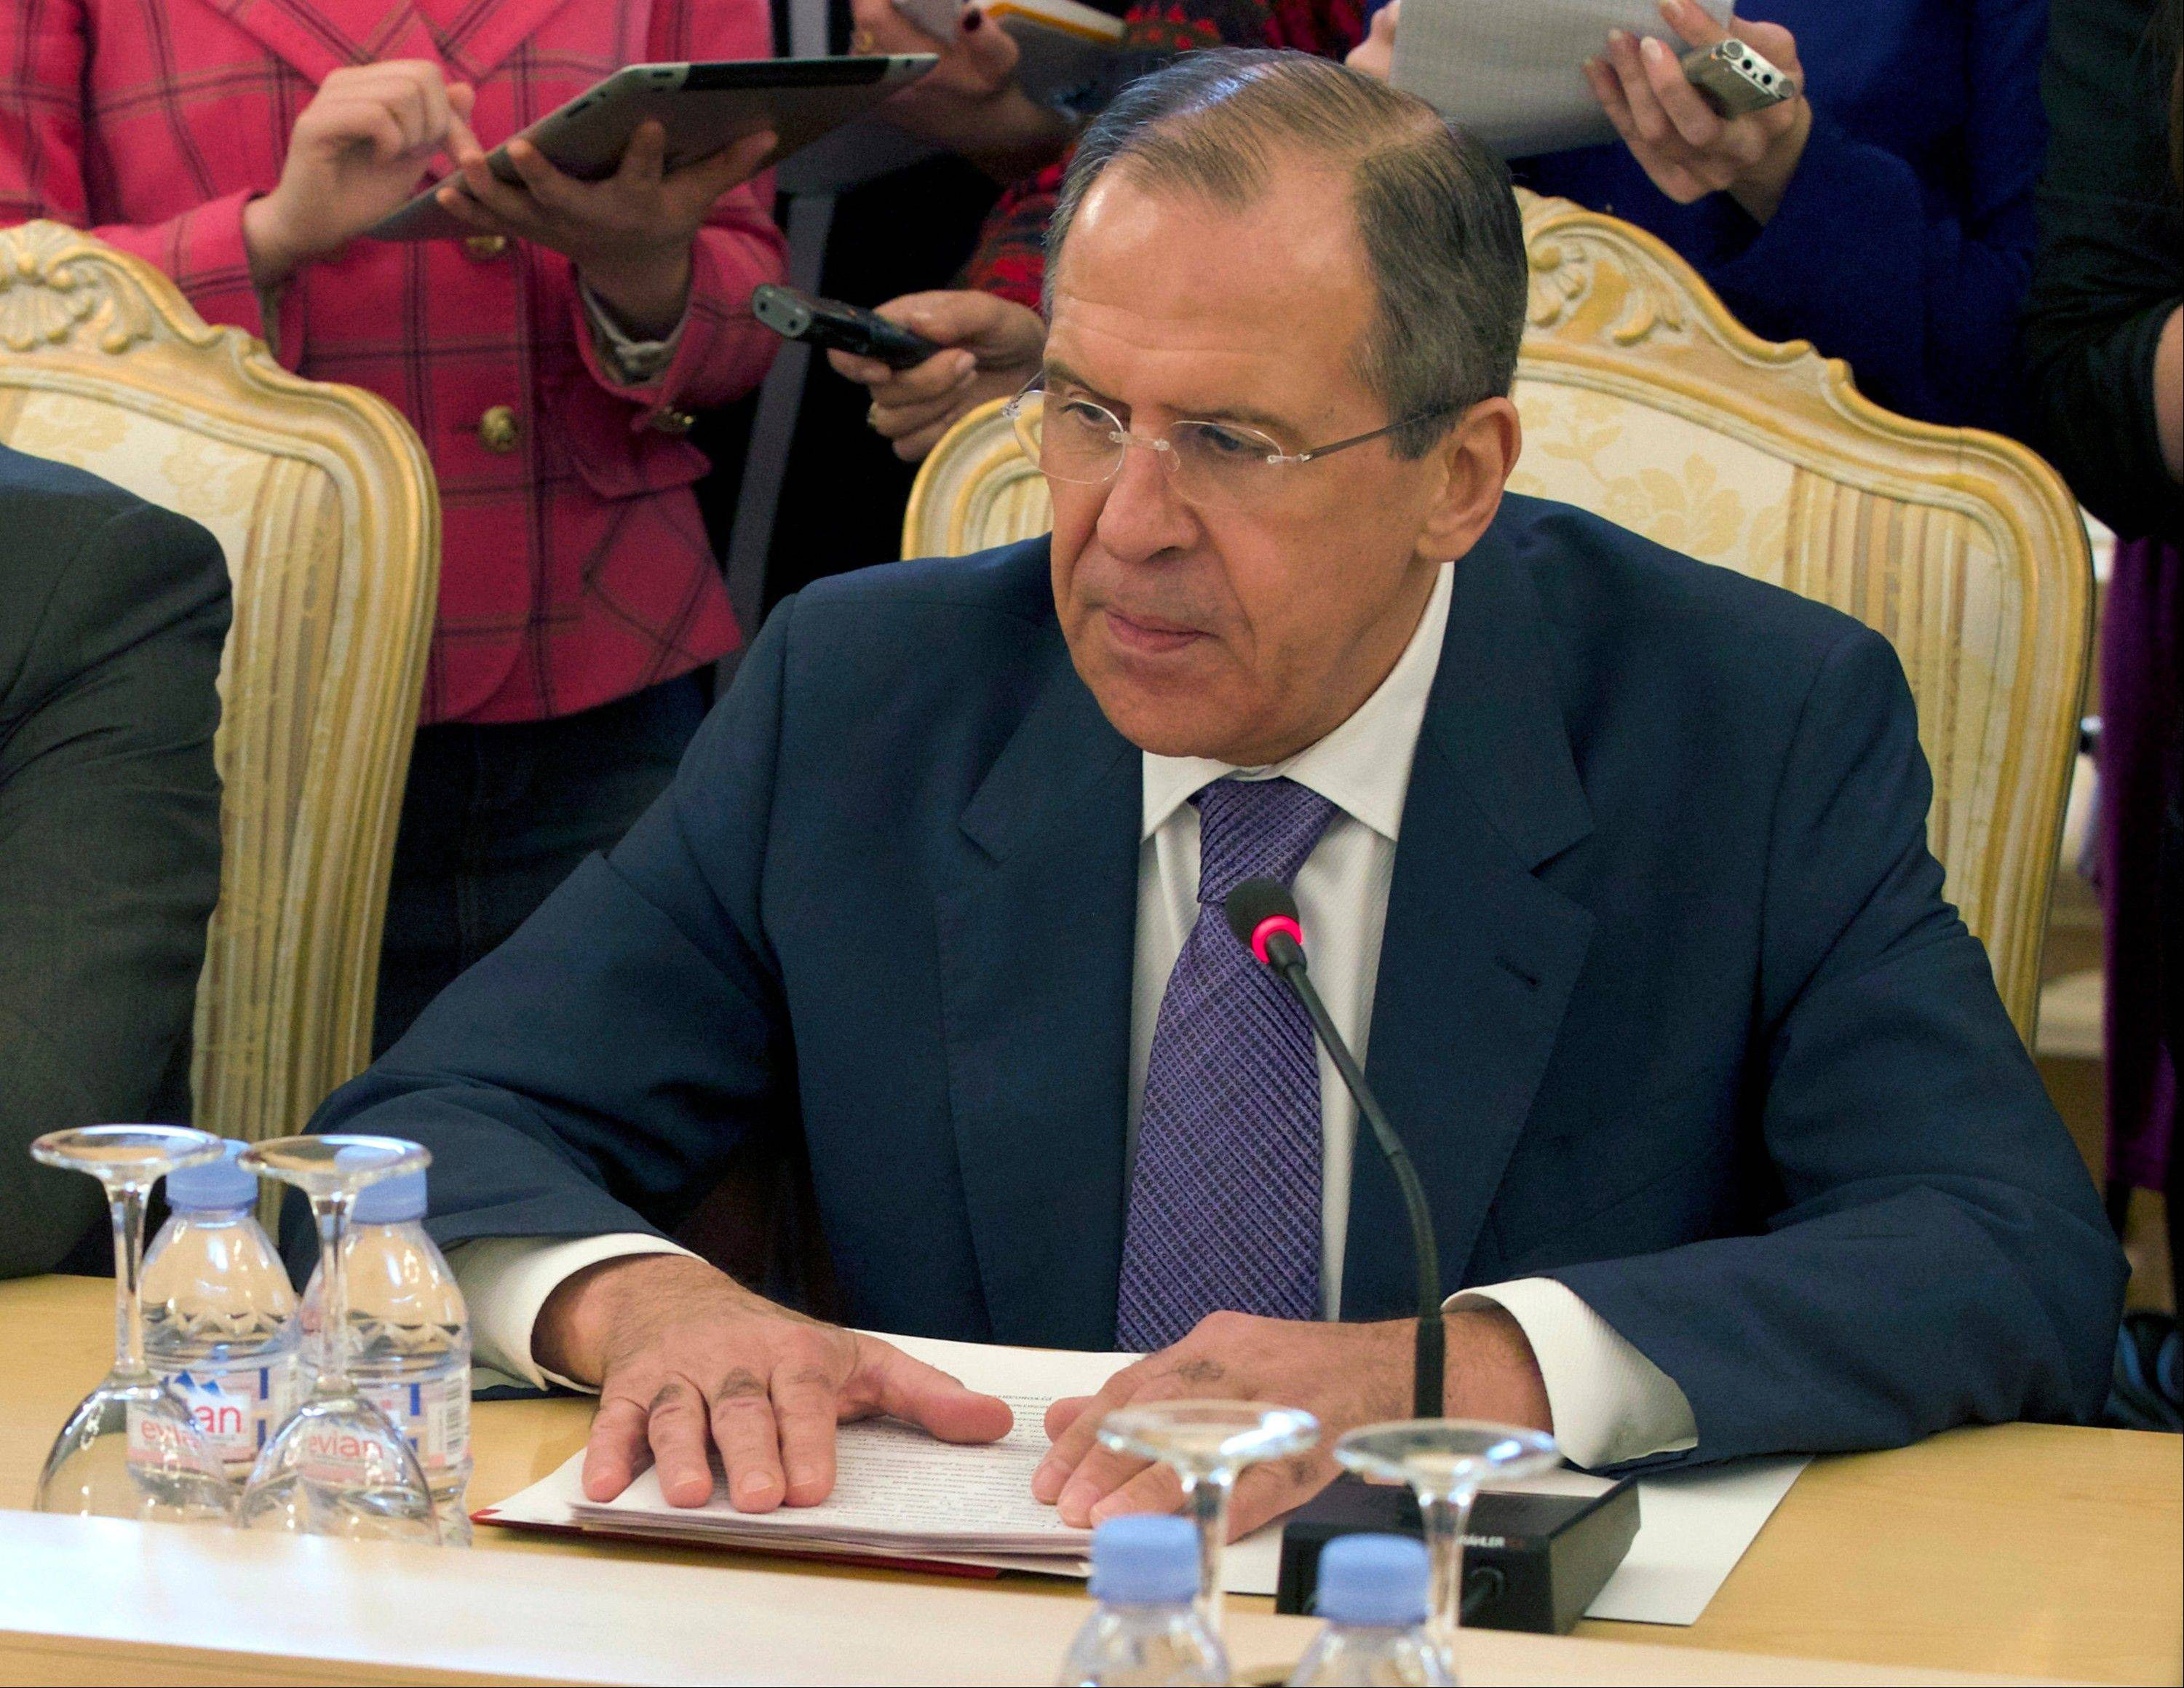 Russian Foreign Minister Sergey Lavrov lays his hands on the table during talks with Thailand's Foreign Minister, not pictured, in Moscow, Russia. Lavrov is demanding an explanation for the North Korean warning that it can't guarantee the safety of embassies in its capital of Pyongyang.